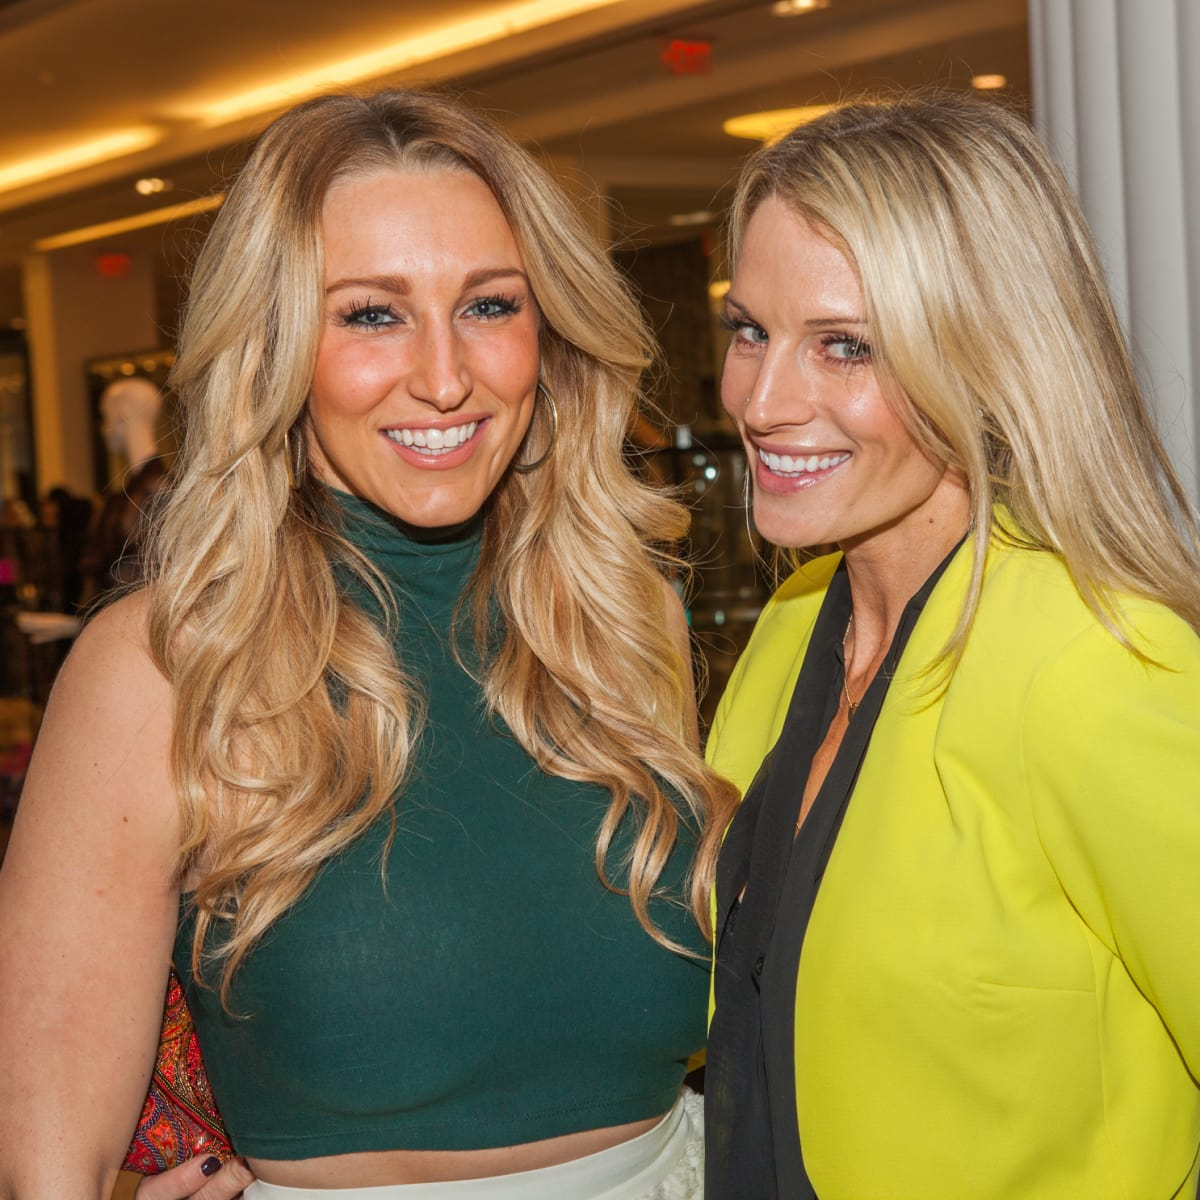 Alyssa Varty, Jennifer Timmins at Heart of Fashion kickoff party